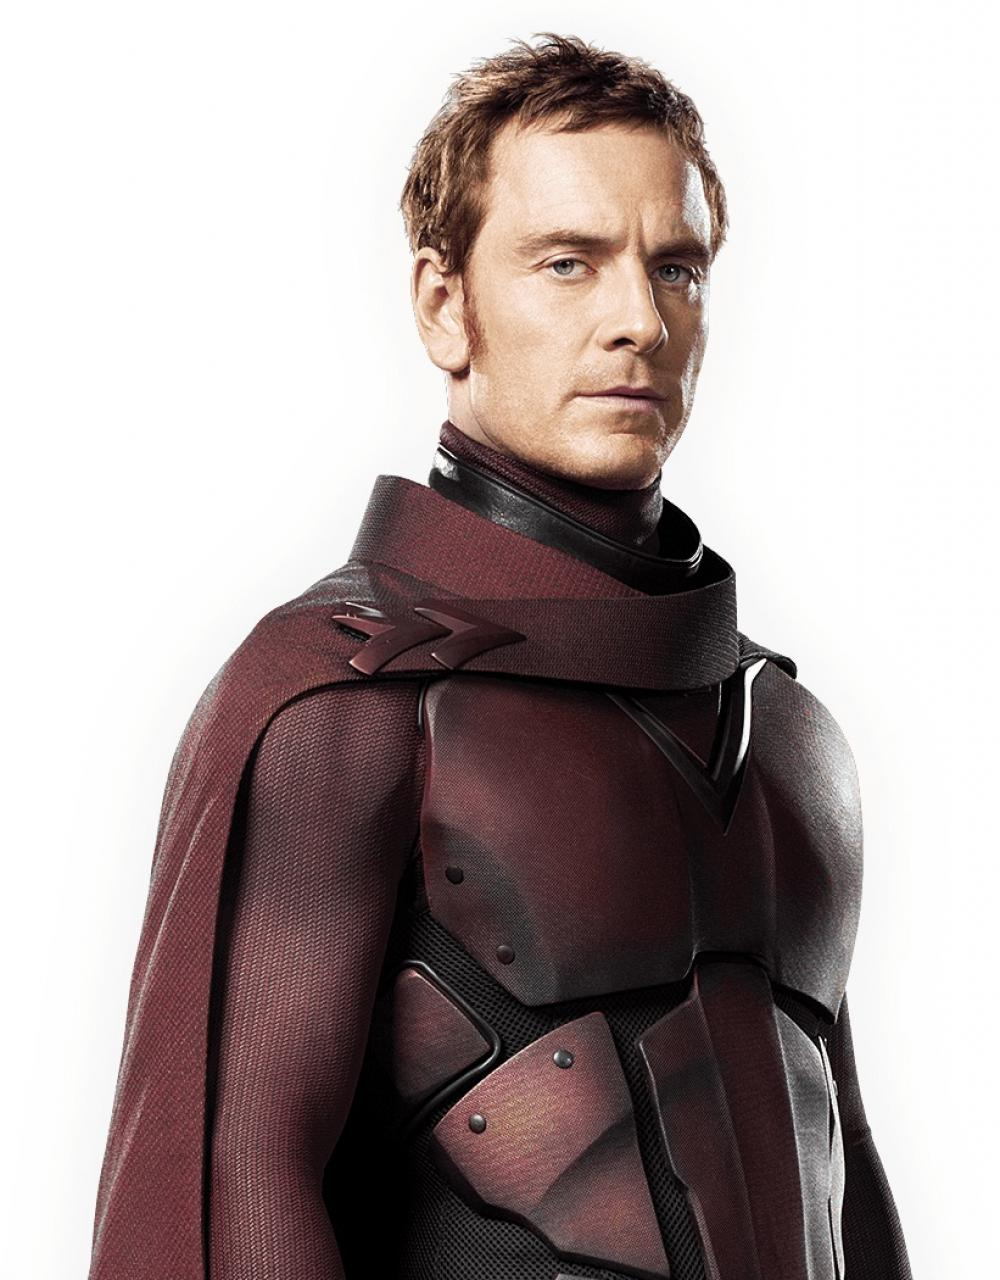 X-Men Days of Future Past – Young Magneto